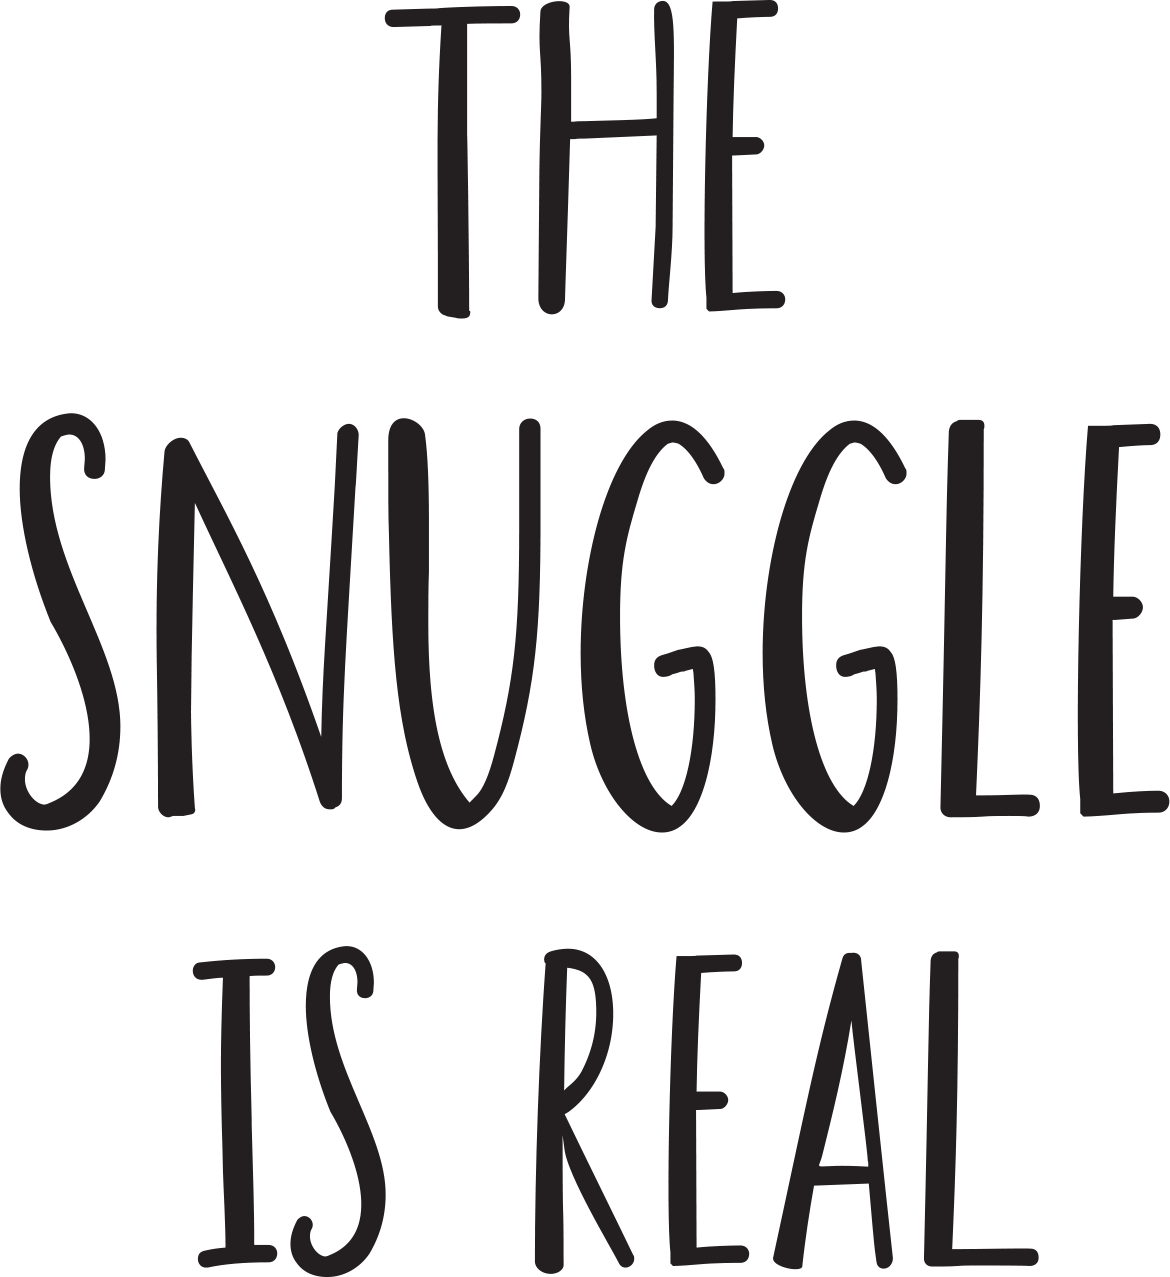 Thesnuggleisreal2